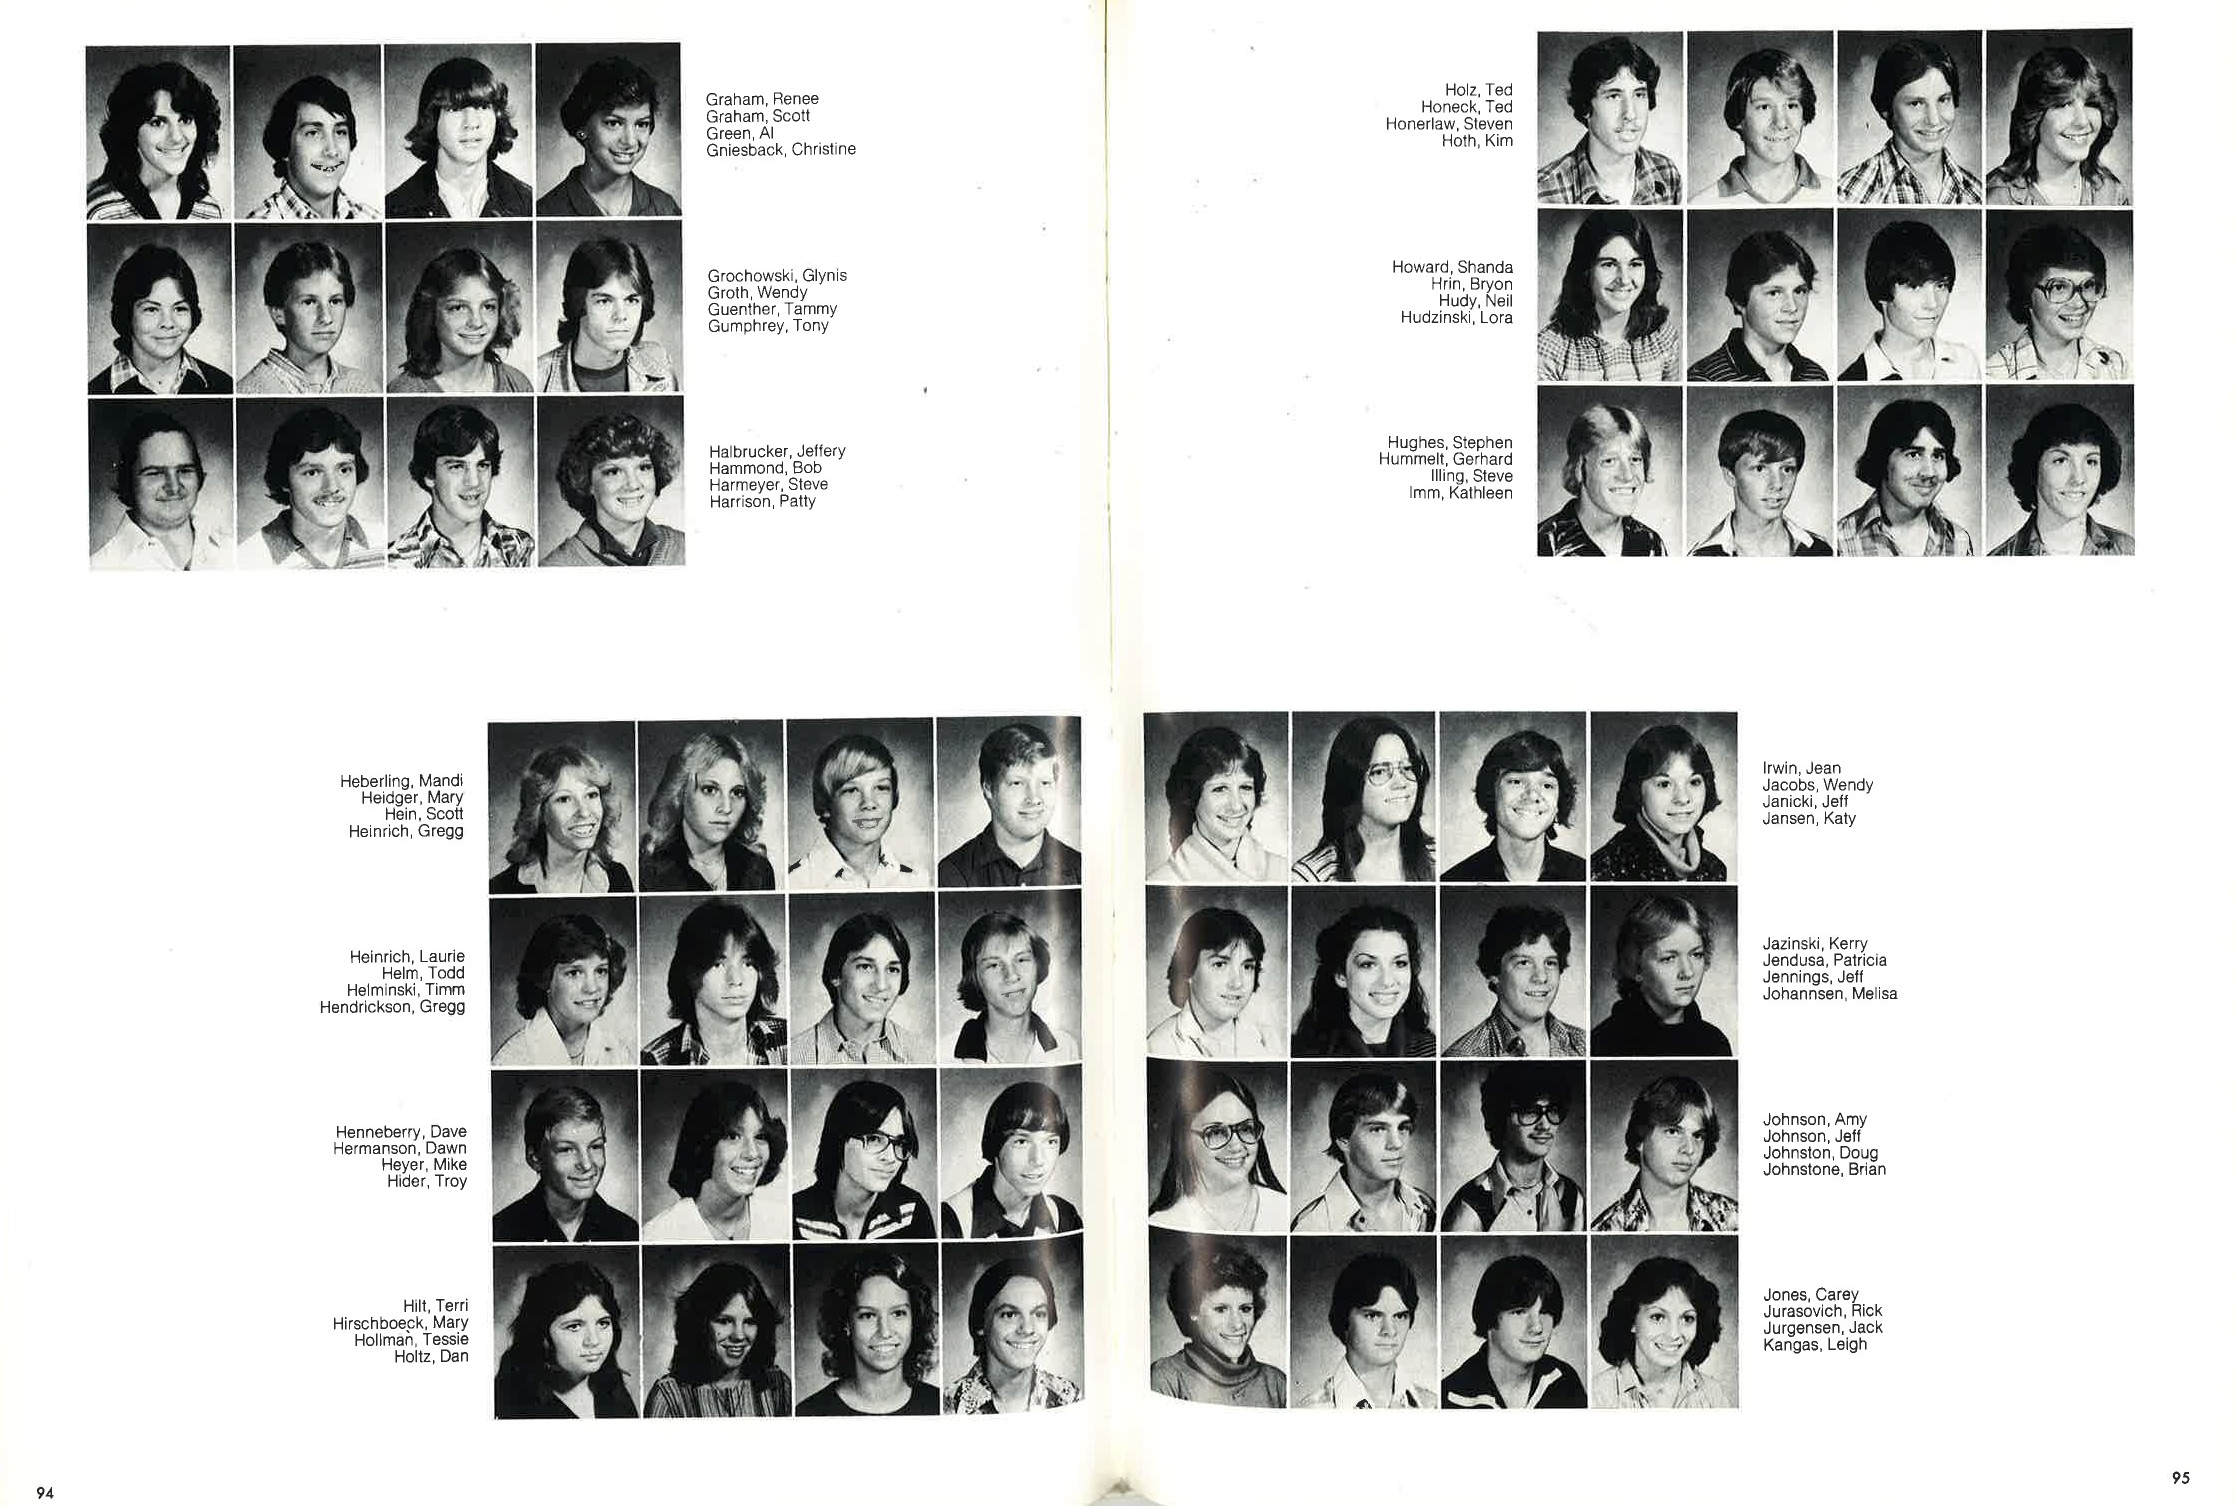 1980_Yearbook_94.jpg